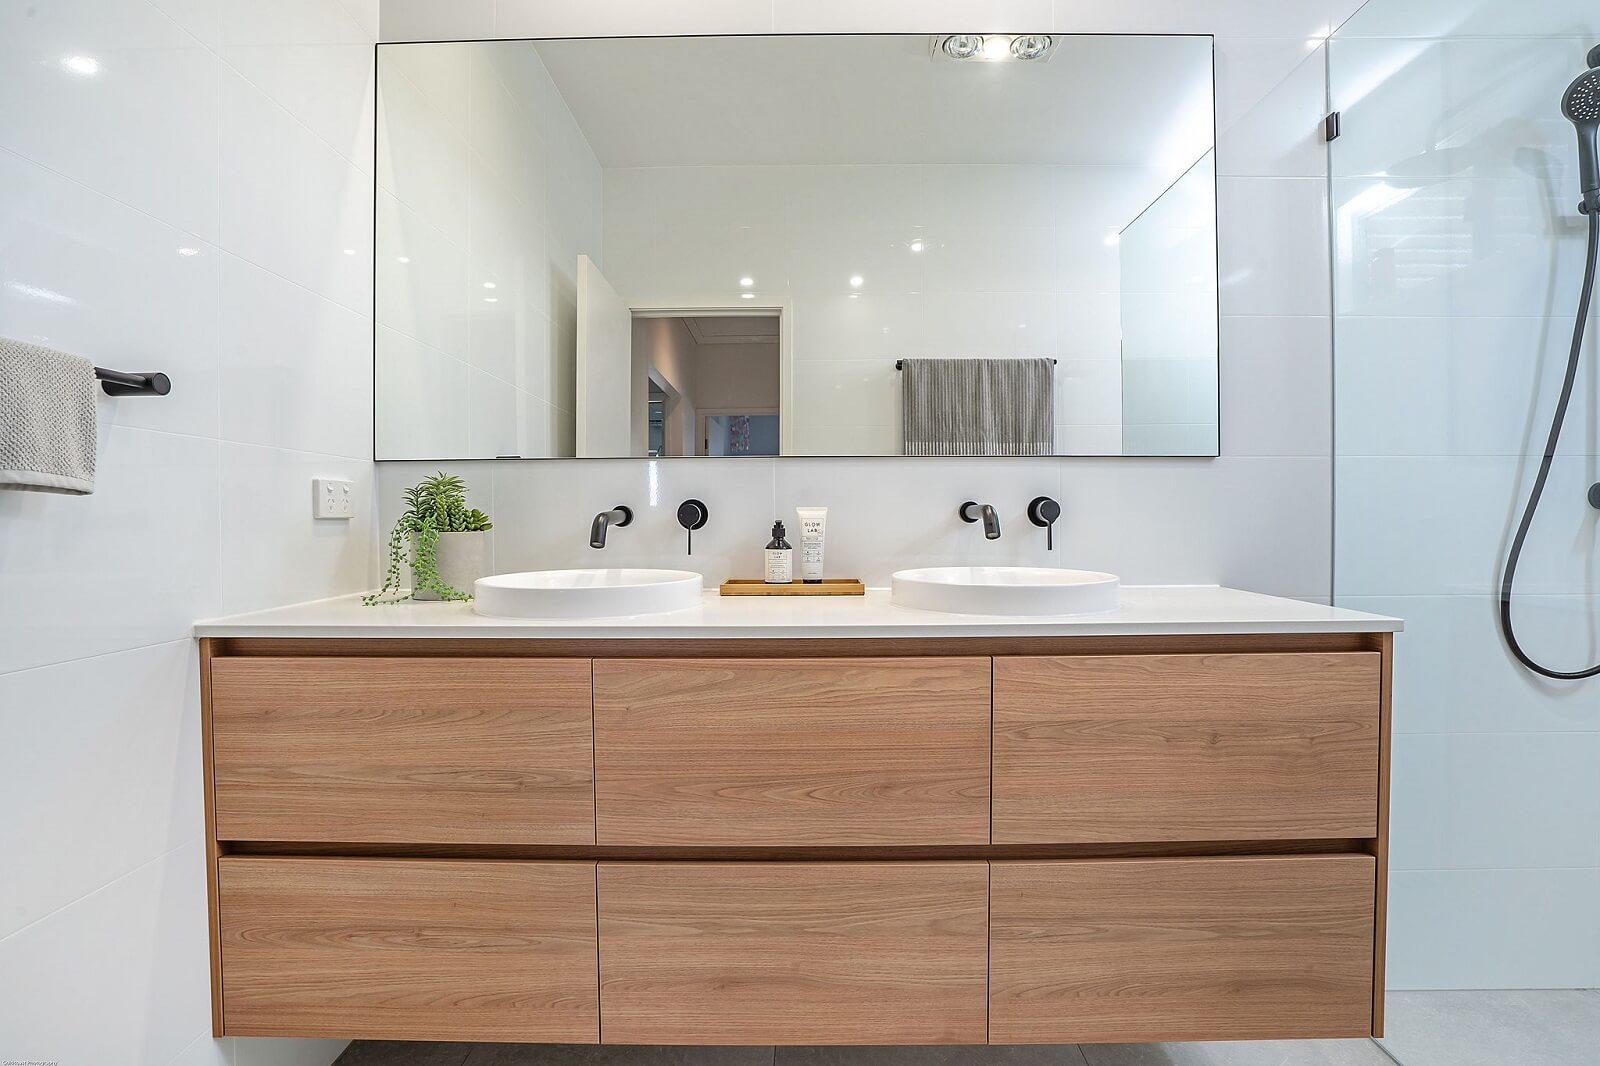 How much do bathroom renovations cost?